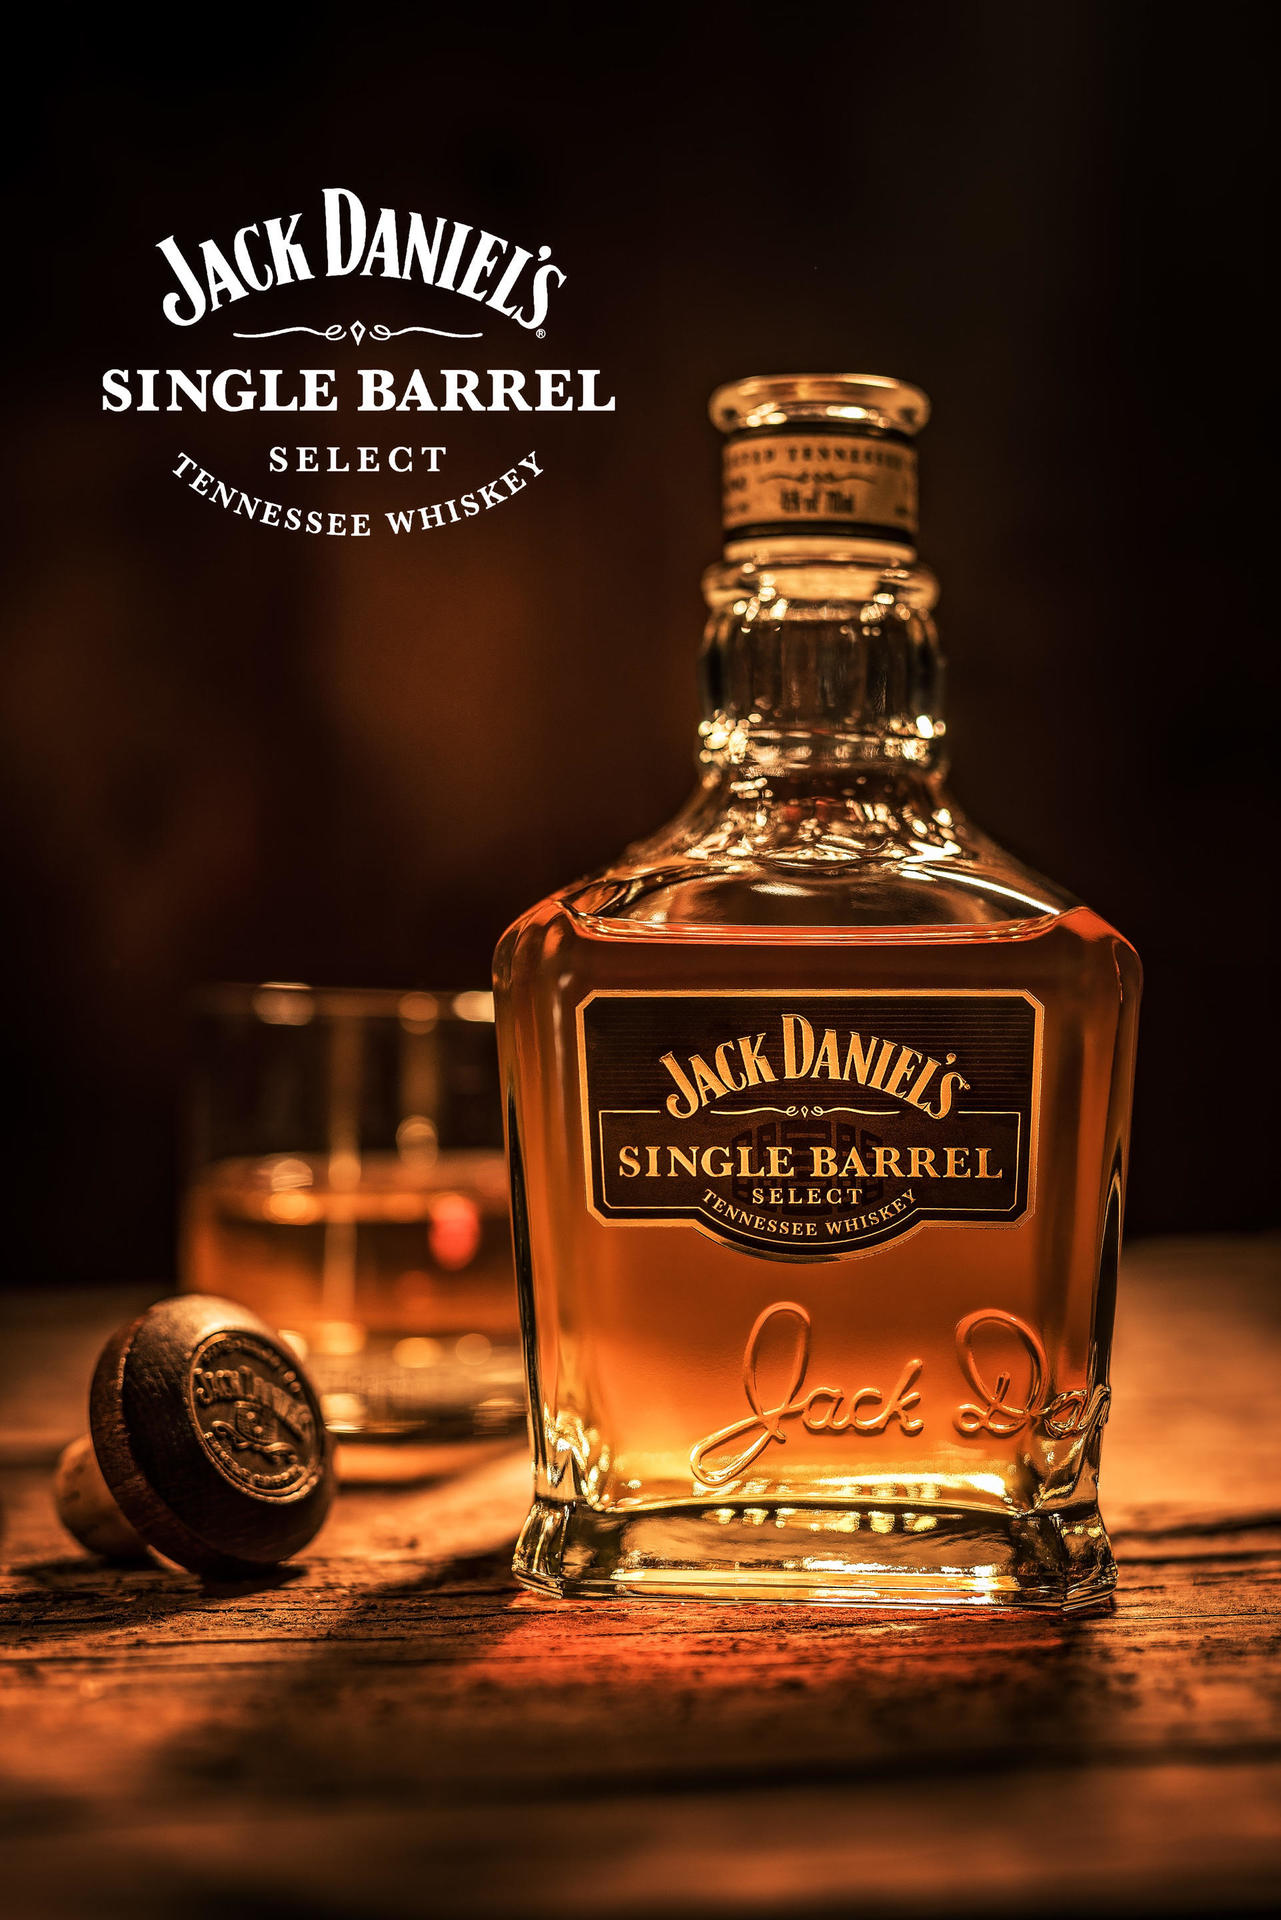 bertolini-photo-jack-daniels-single-barrel-2